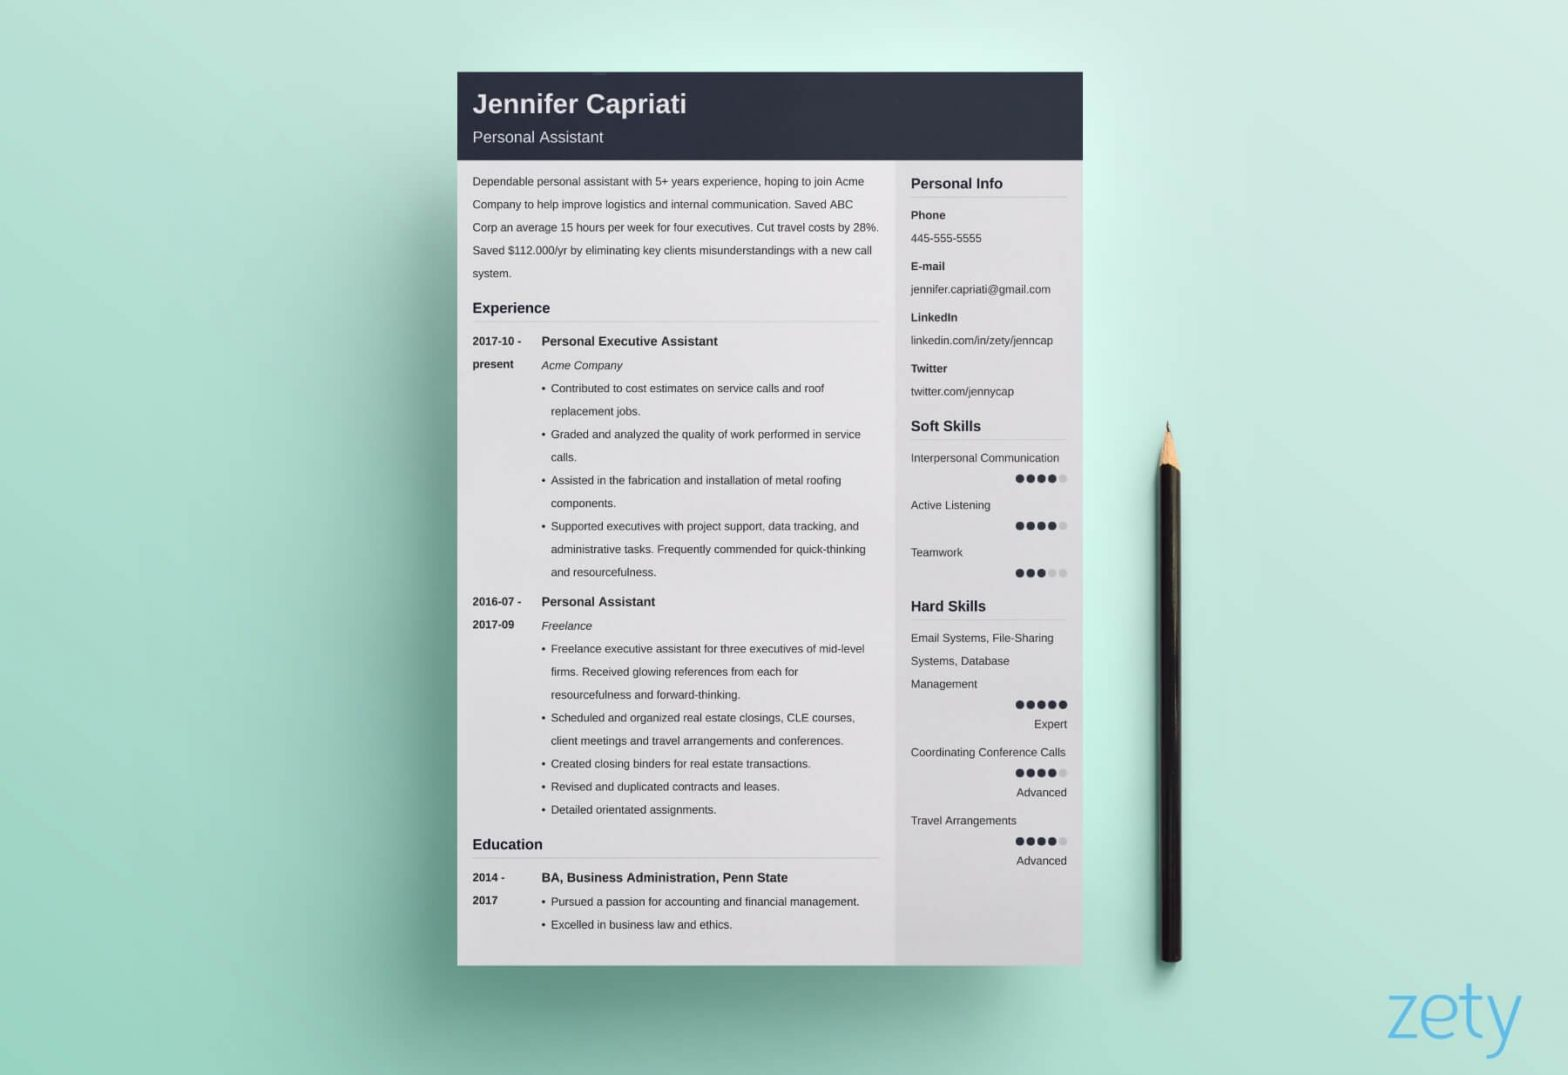 Top 5 Tips for a Perfect Resume That Will Satisfy a Recruiter and Employer